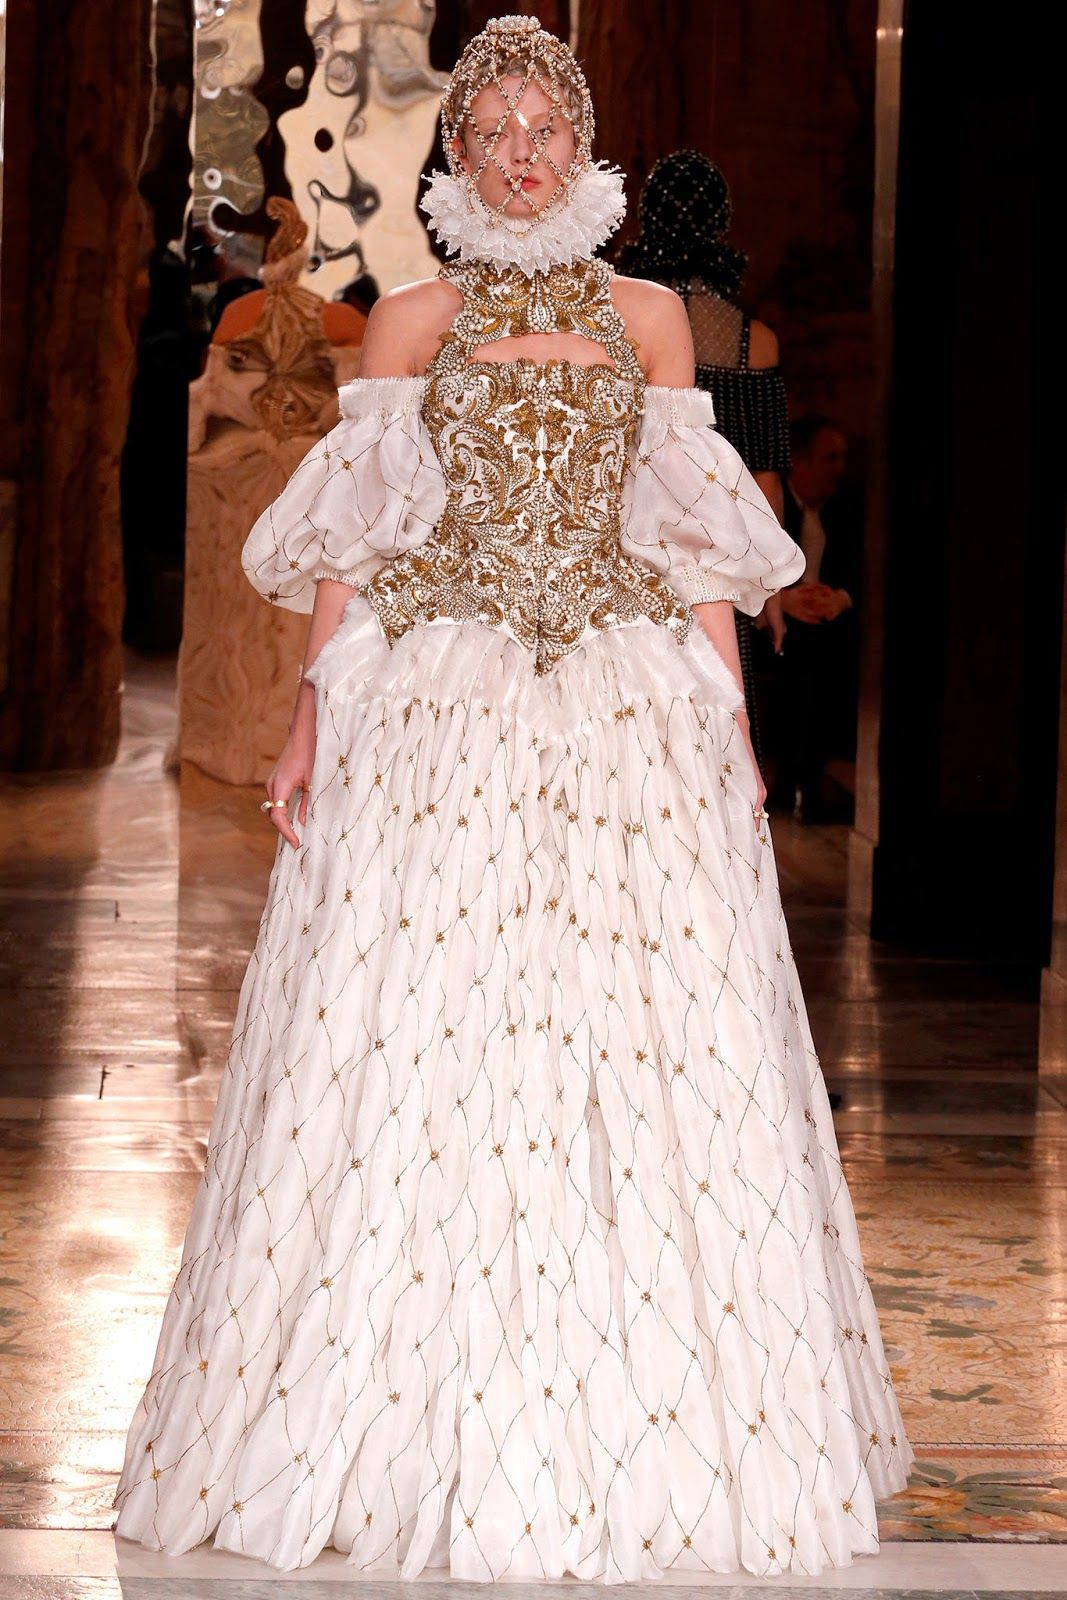 Alexander mcqueen fall 2013 paris wide ruff collar with wheel alexander mcqueen fall 2013 ready to wear collection wearing an embroided corset with this dress sleeves reminiscet of the large virgo sleeves junglespirit Gallery